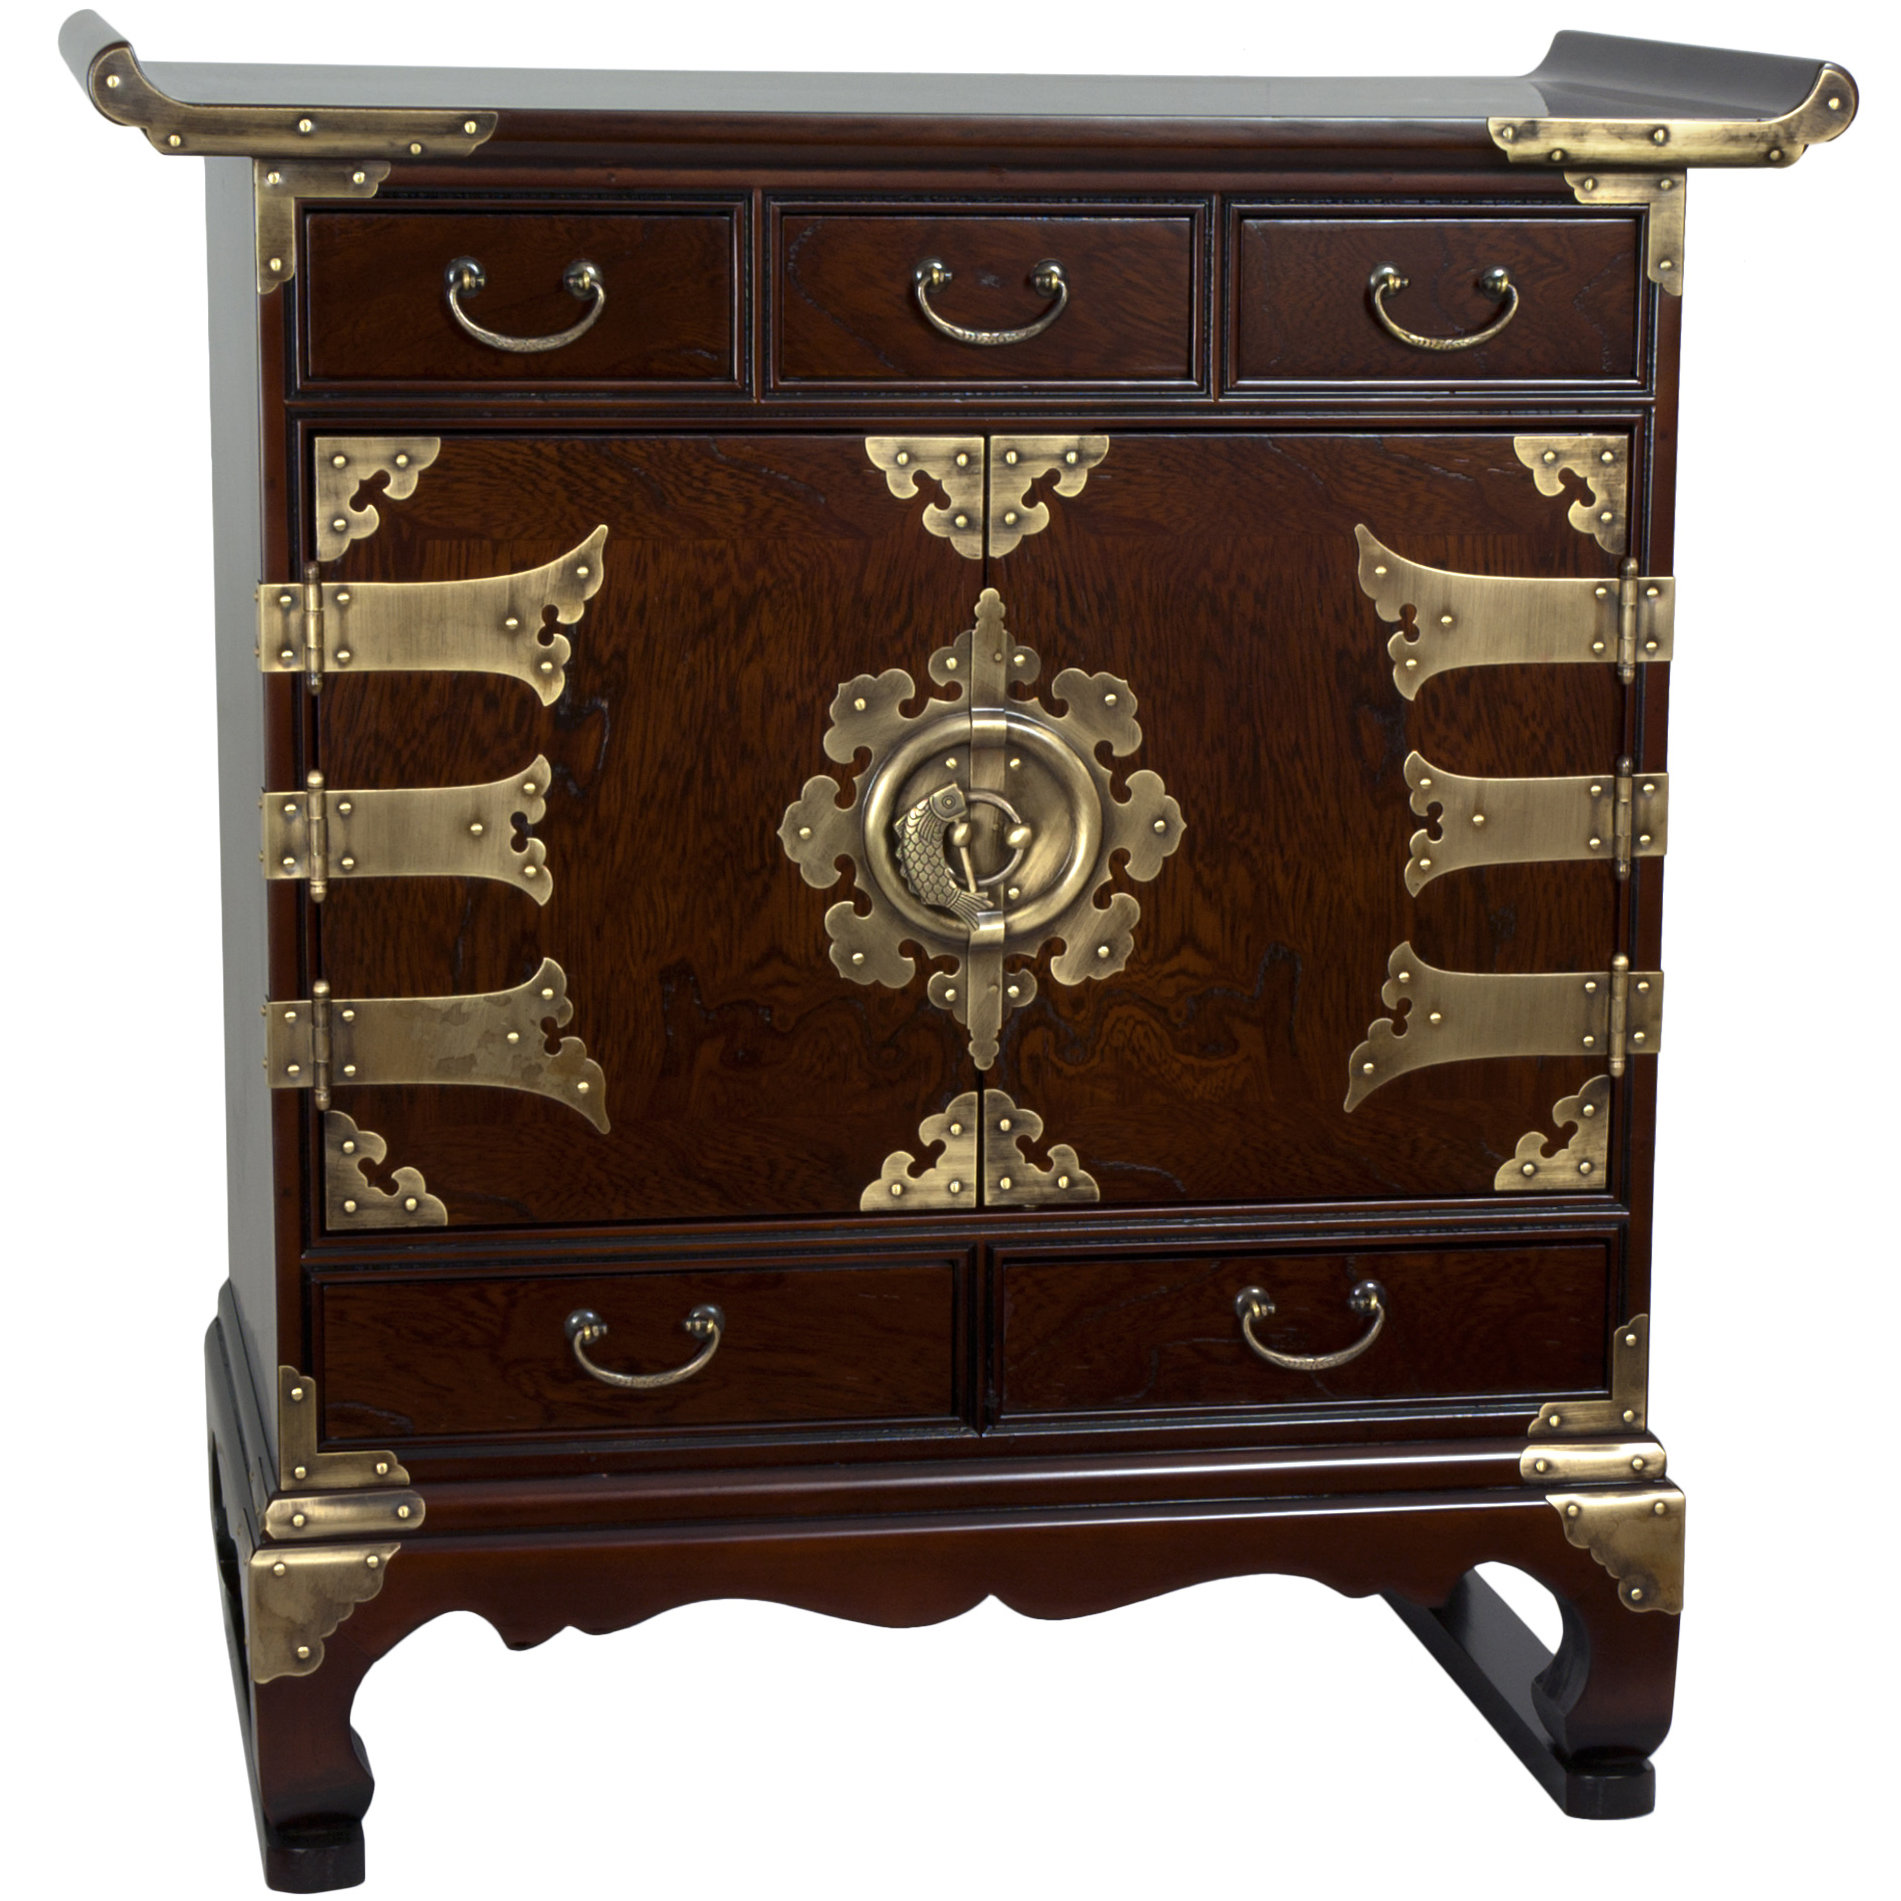 end table cabinet korean drawer accent with basket drawers target threshold windham black outdoor furniture brass glass large tall narrow hallway home goods bedside tables farm